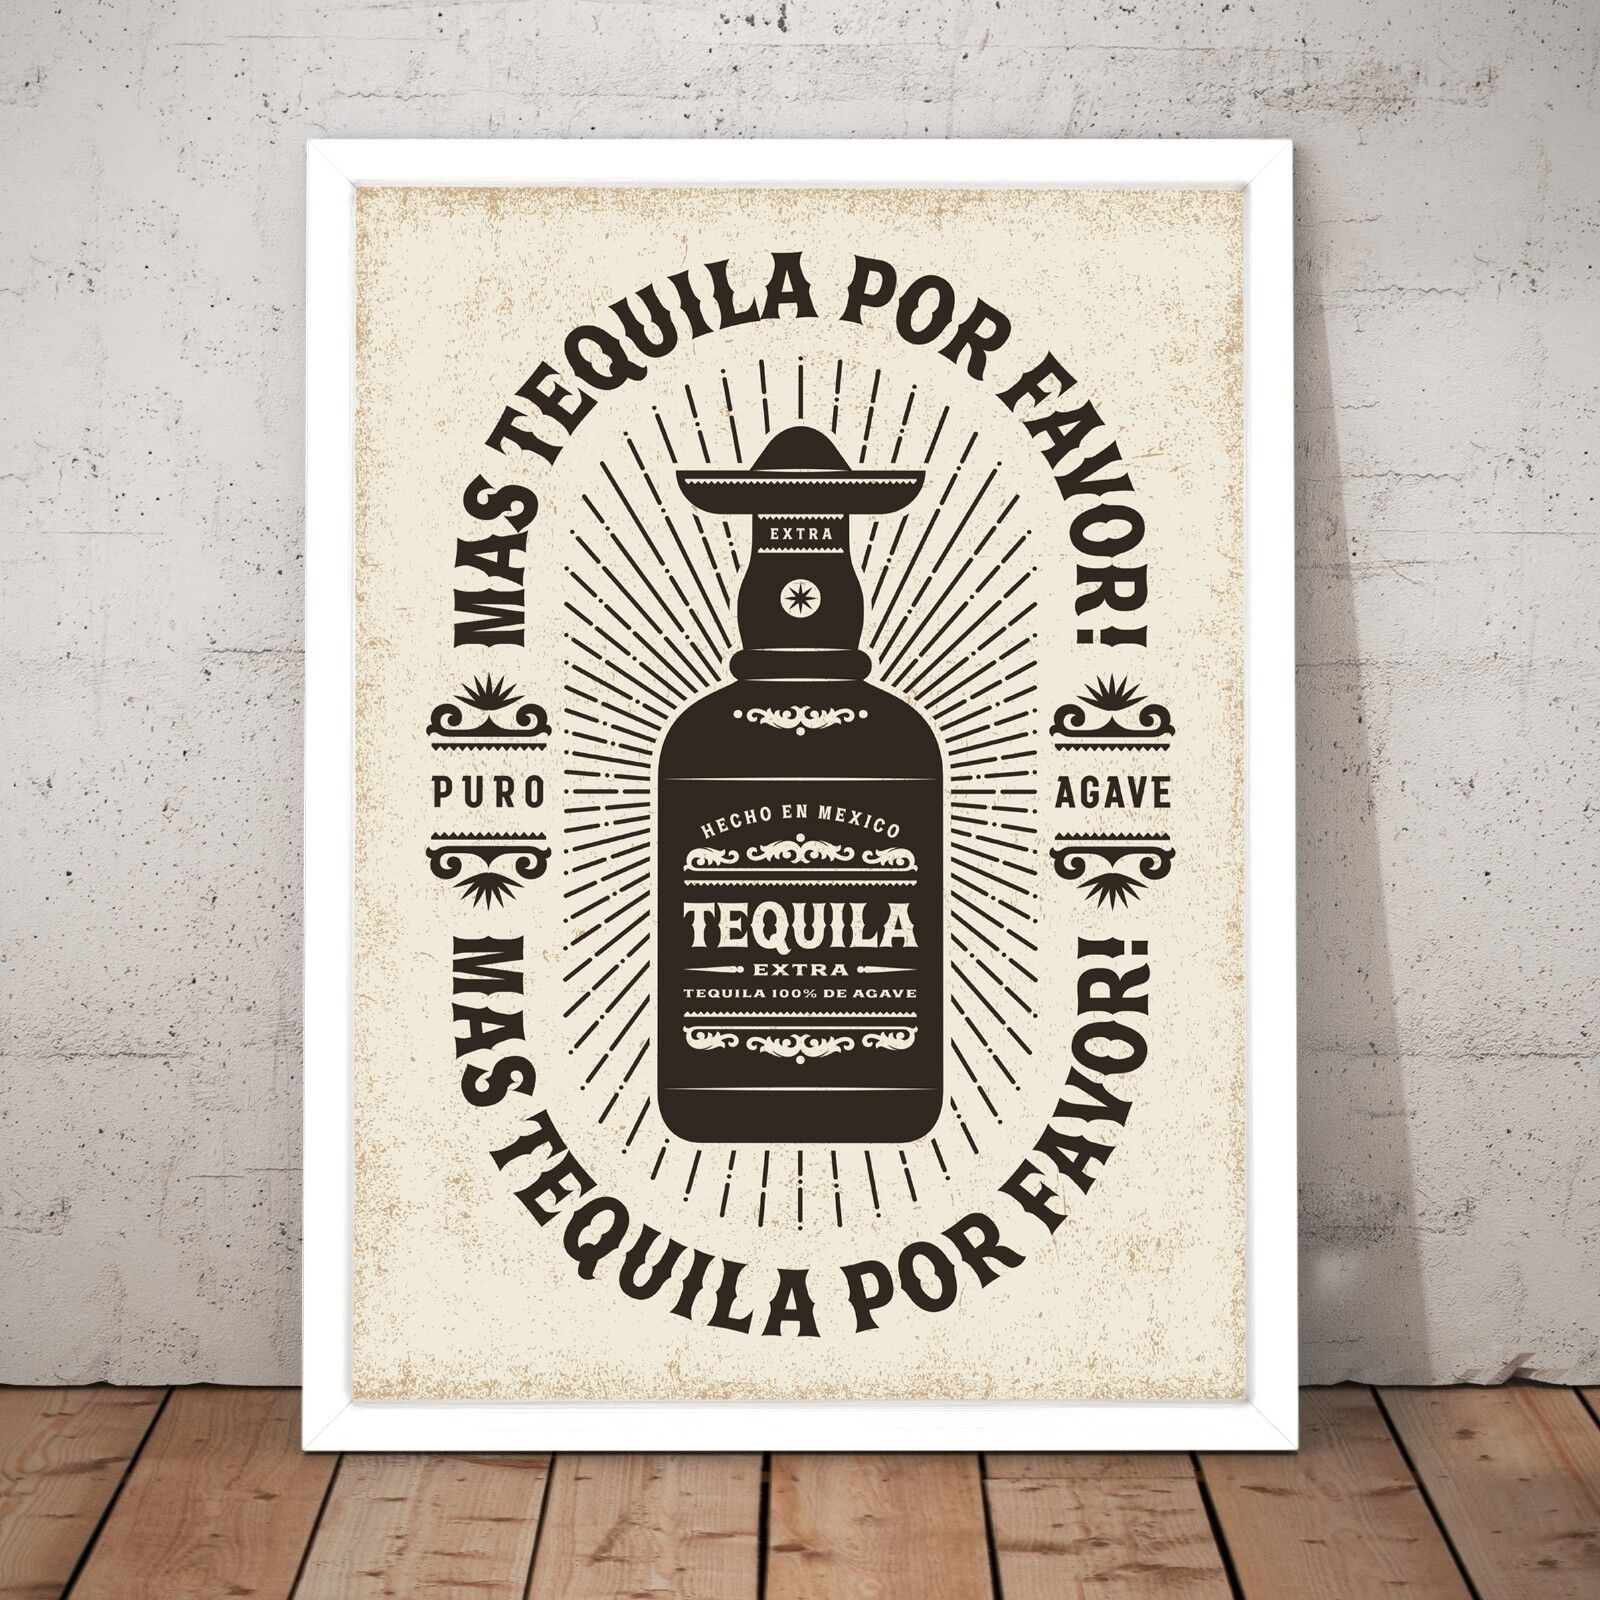 Vintage Tequila Mexican Bar Cafe Decor Art Poster Print - A3 A2 A1 A0 Framed